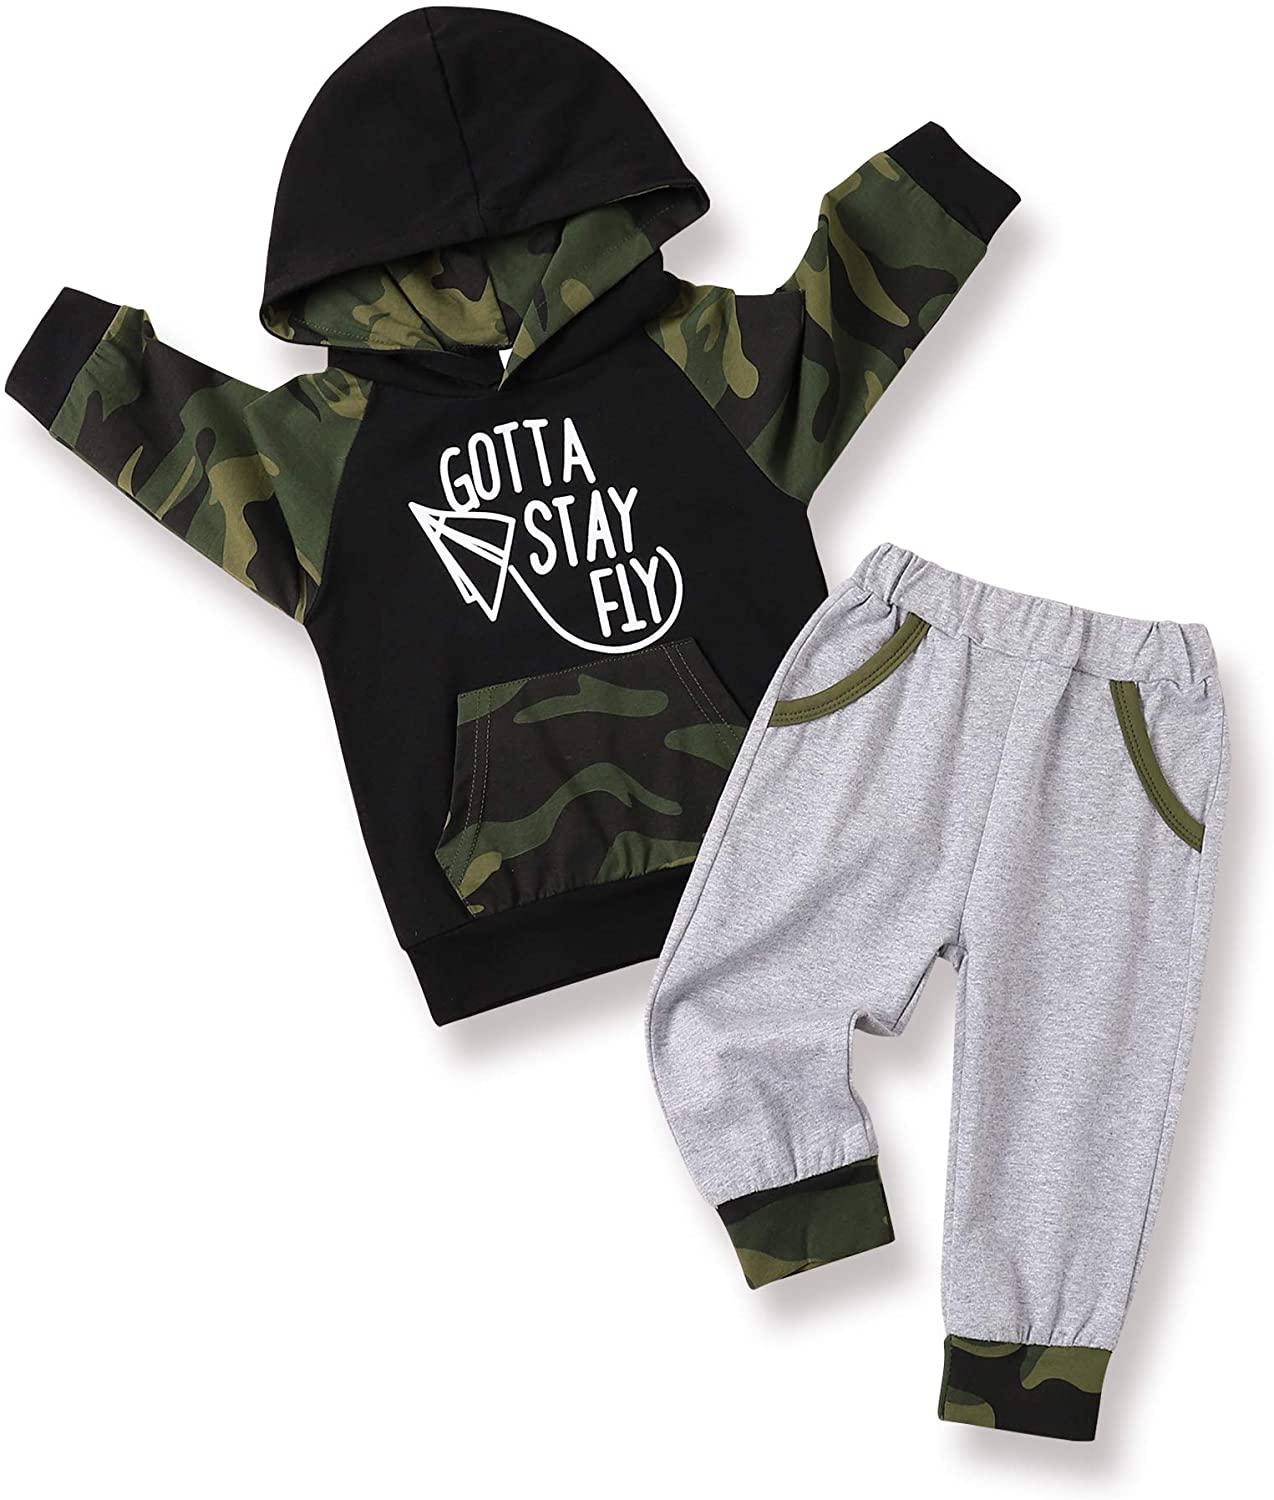 Toddler Baby Boy Clothes Infant Camouflage Outfits Set Long Sleeve Hoodie Sweatsuit Top + Sweatpants Long Pants